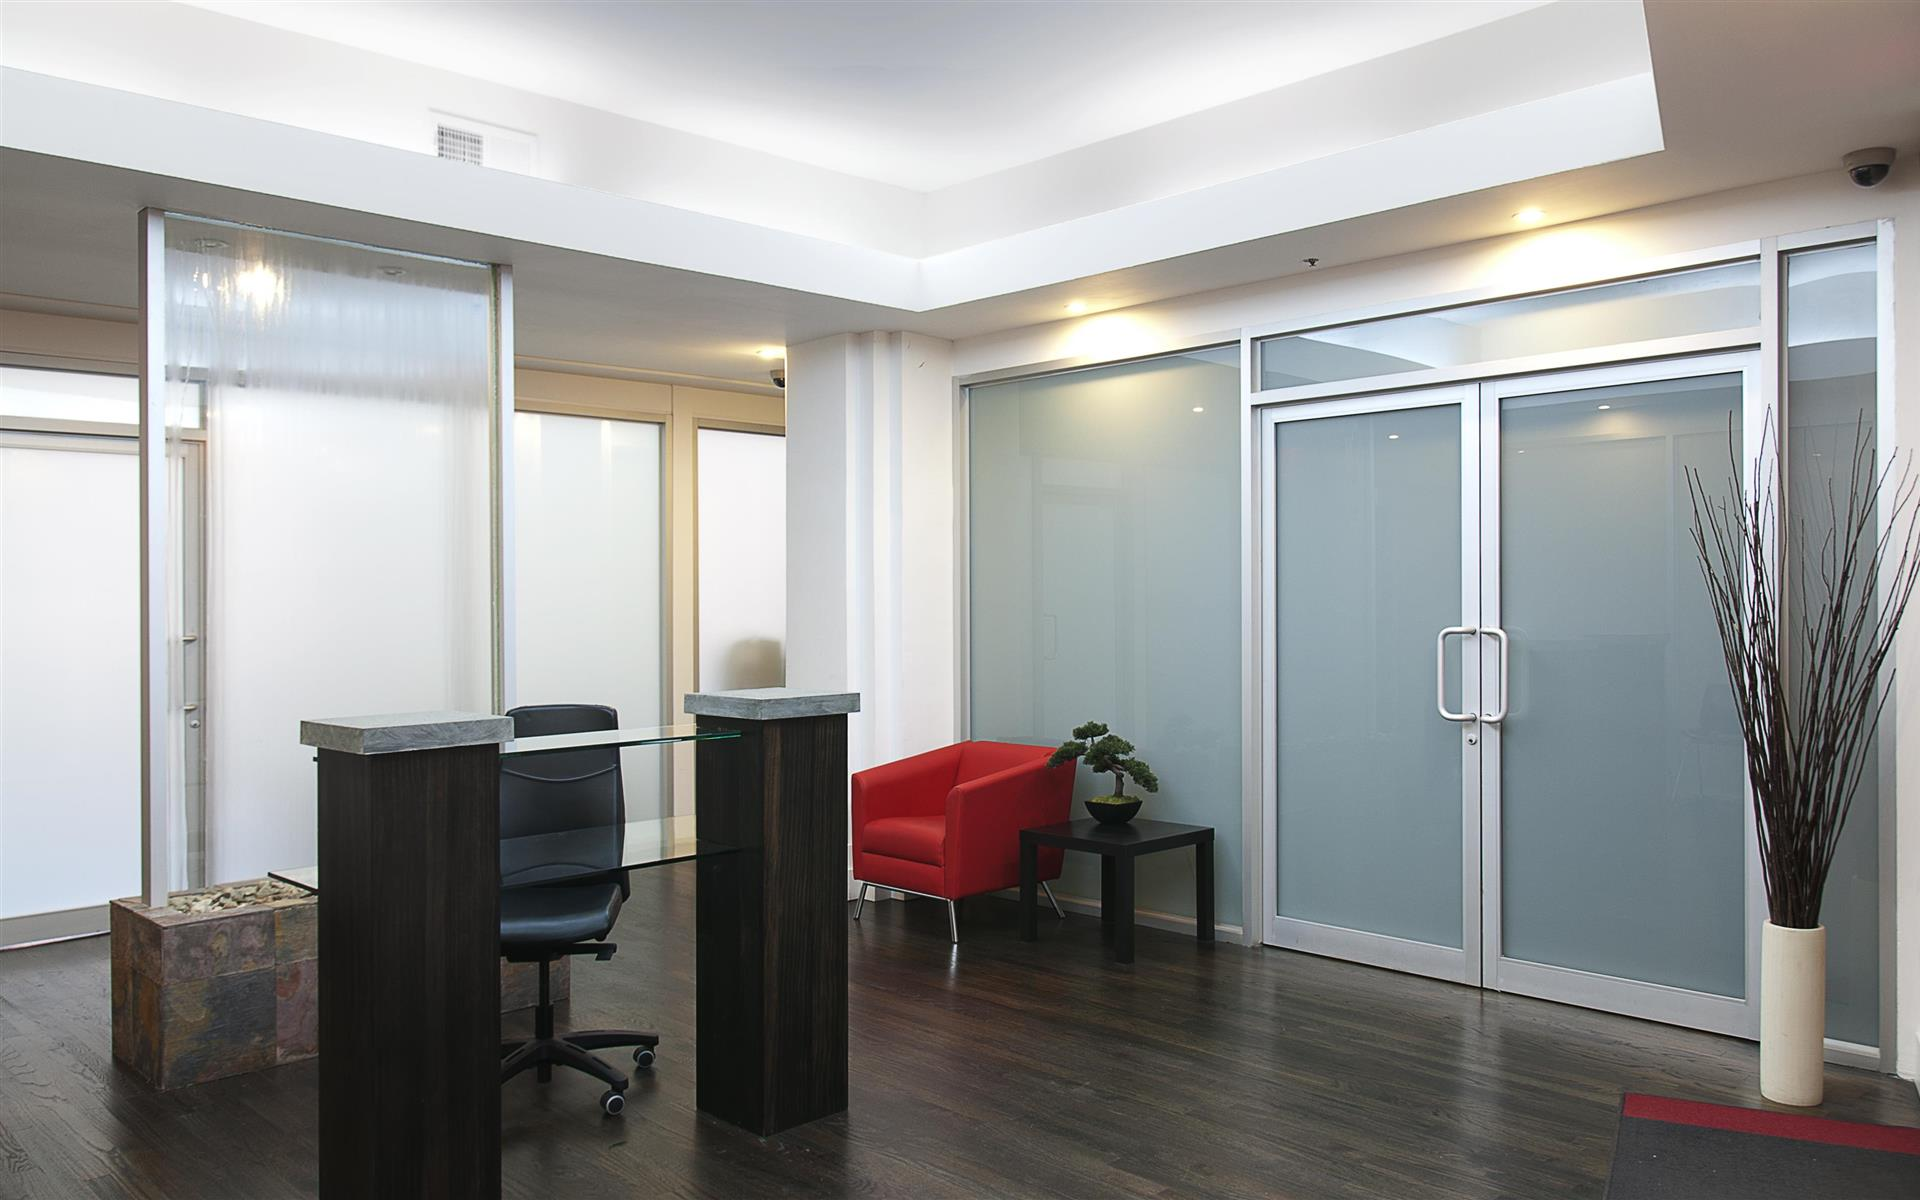 Gravel Road Business Executive Suites - Office for up to 3 people